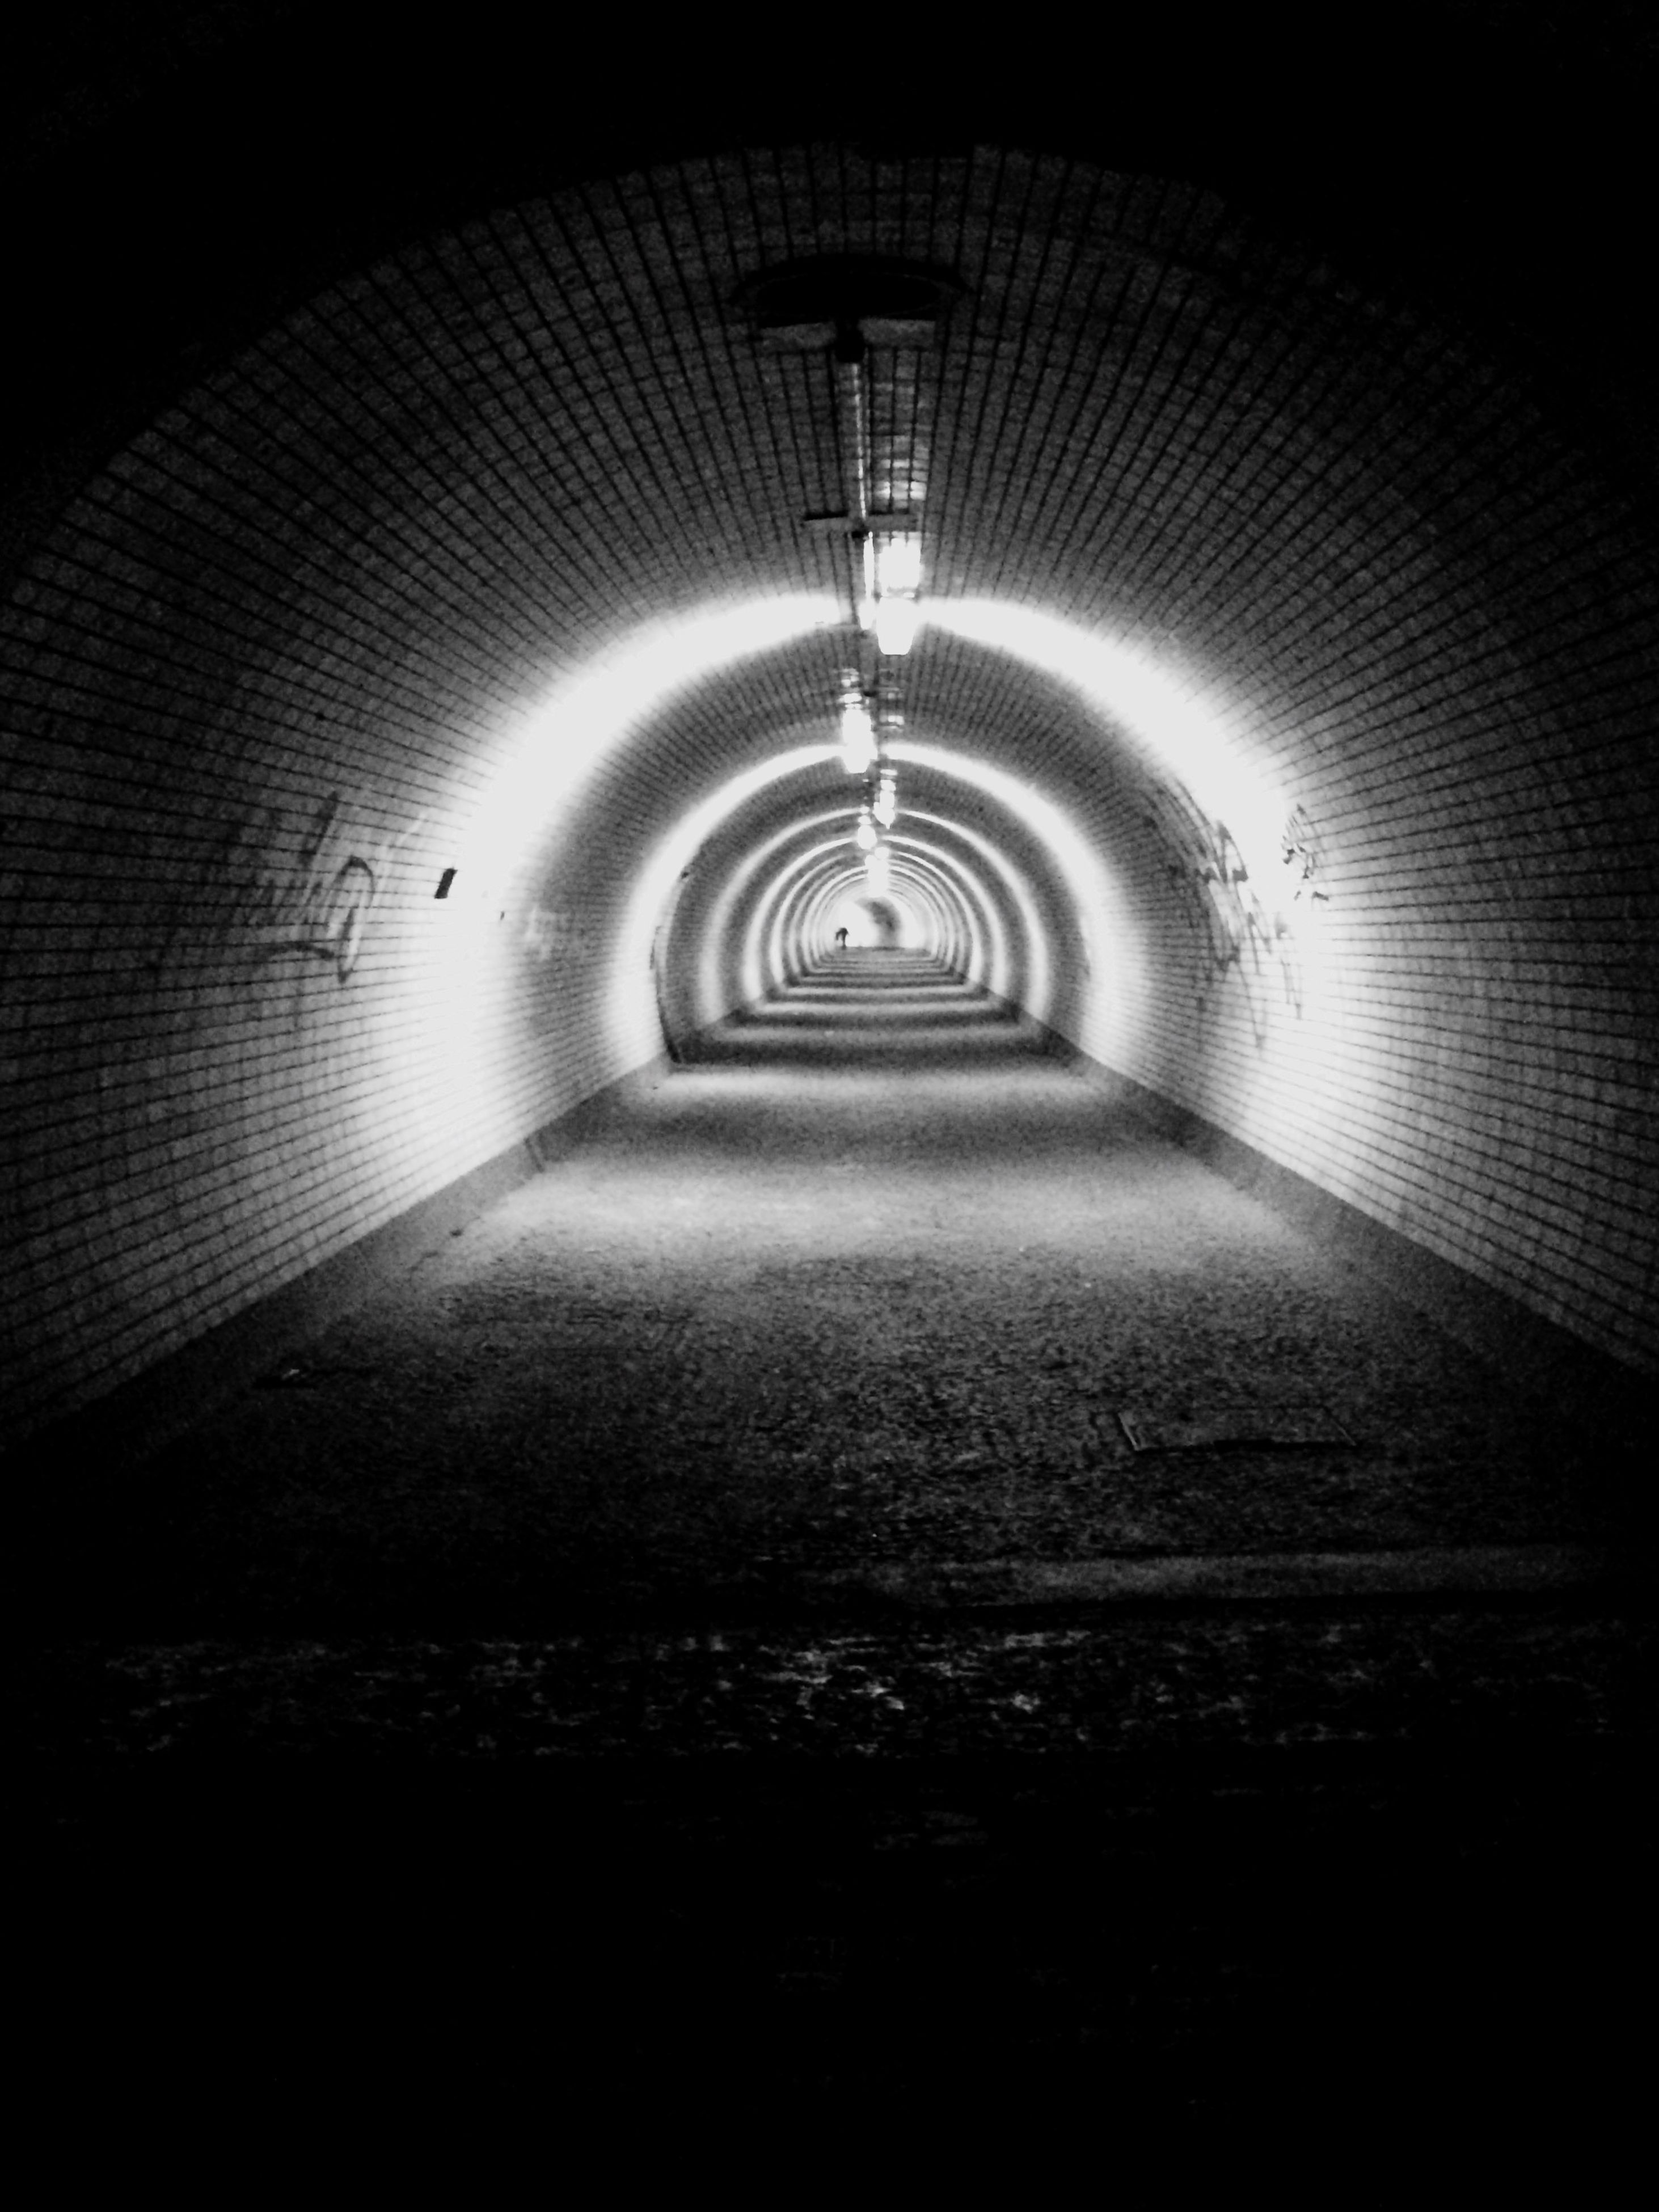 indoors, the way forward, illuminated, tunnel, diminishing perspective, lighting equipment, ceiling, vanishing point, arch, architecture, built structure, empty, electric light, wall - building feature, light - natural phenomenon, corridor, night, dark, no people, light at the end of the tunnel